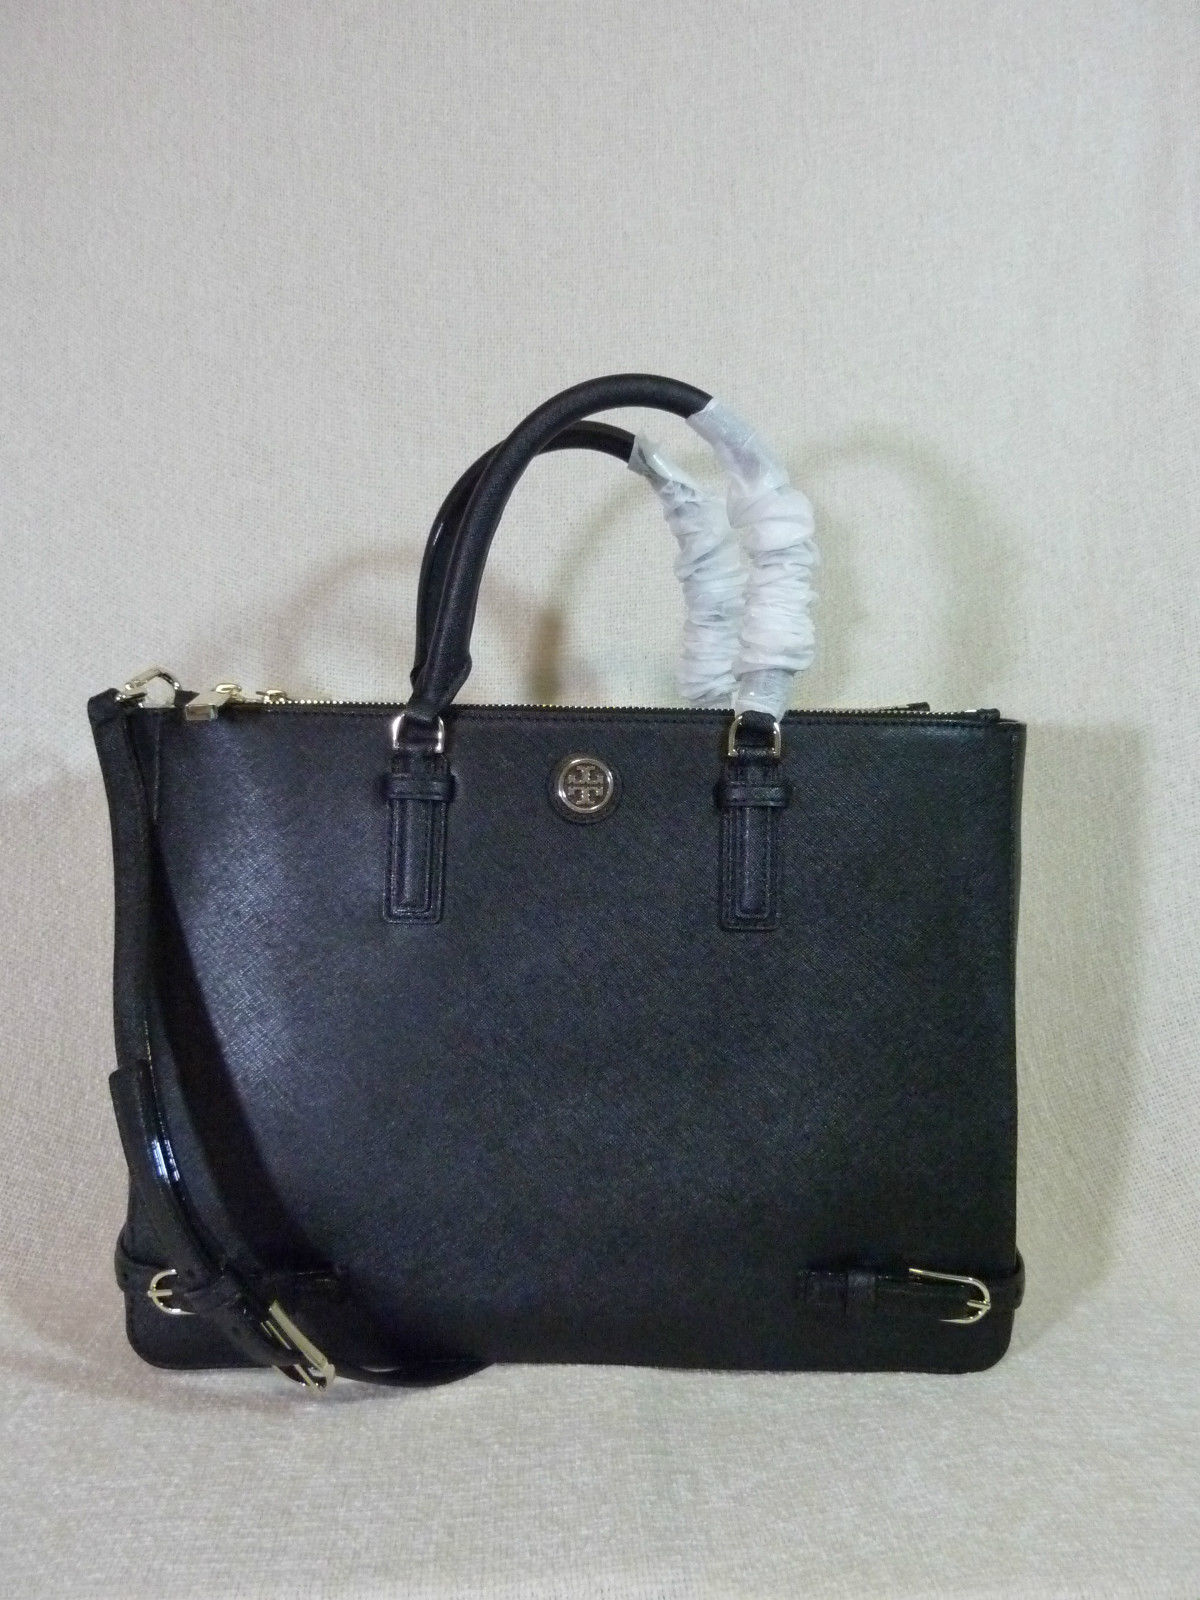 NWT Tory Burch Black Saffiano Leather Large Robinson Multi Tote + Wallet $820